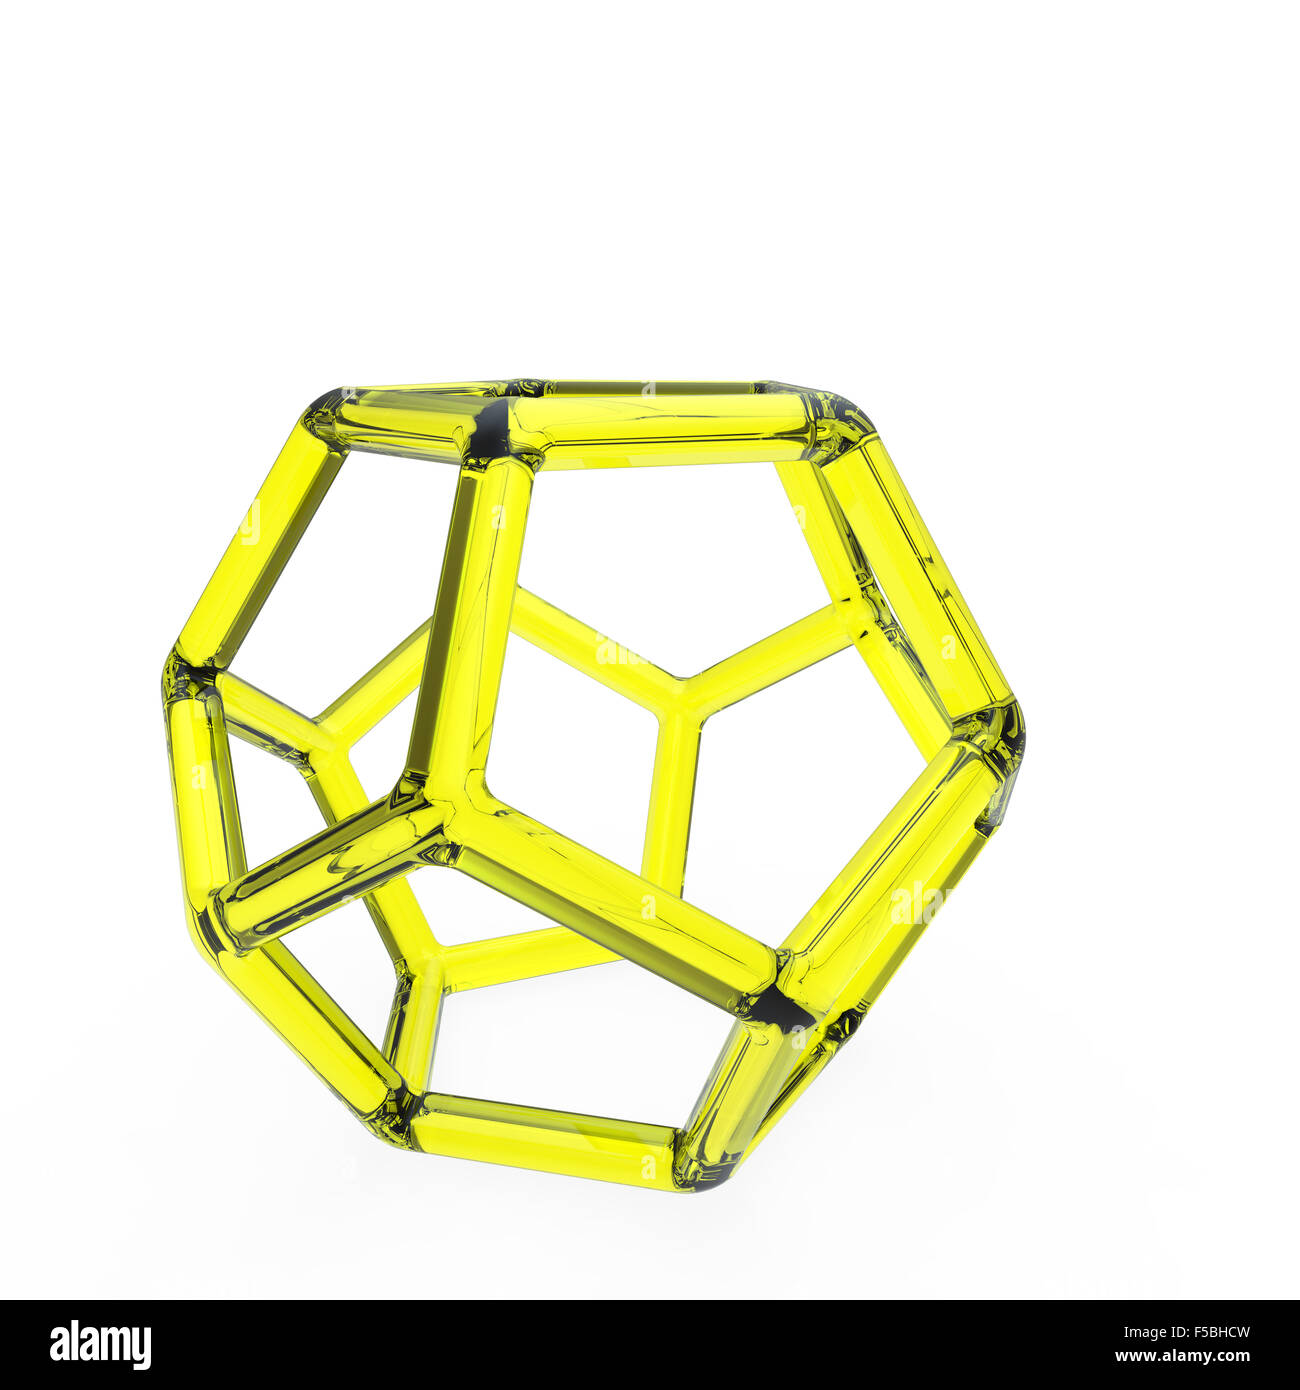 3d yellow plastic dodecahedron with transparent frame on white background - Stock Image